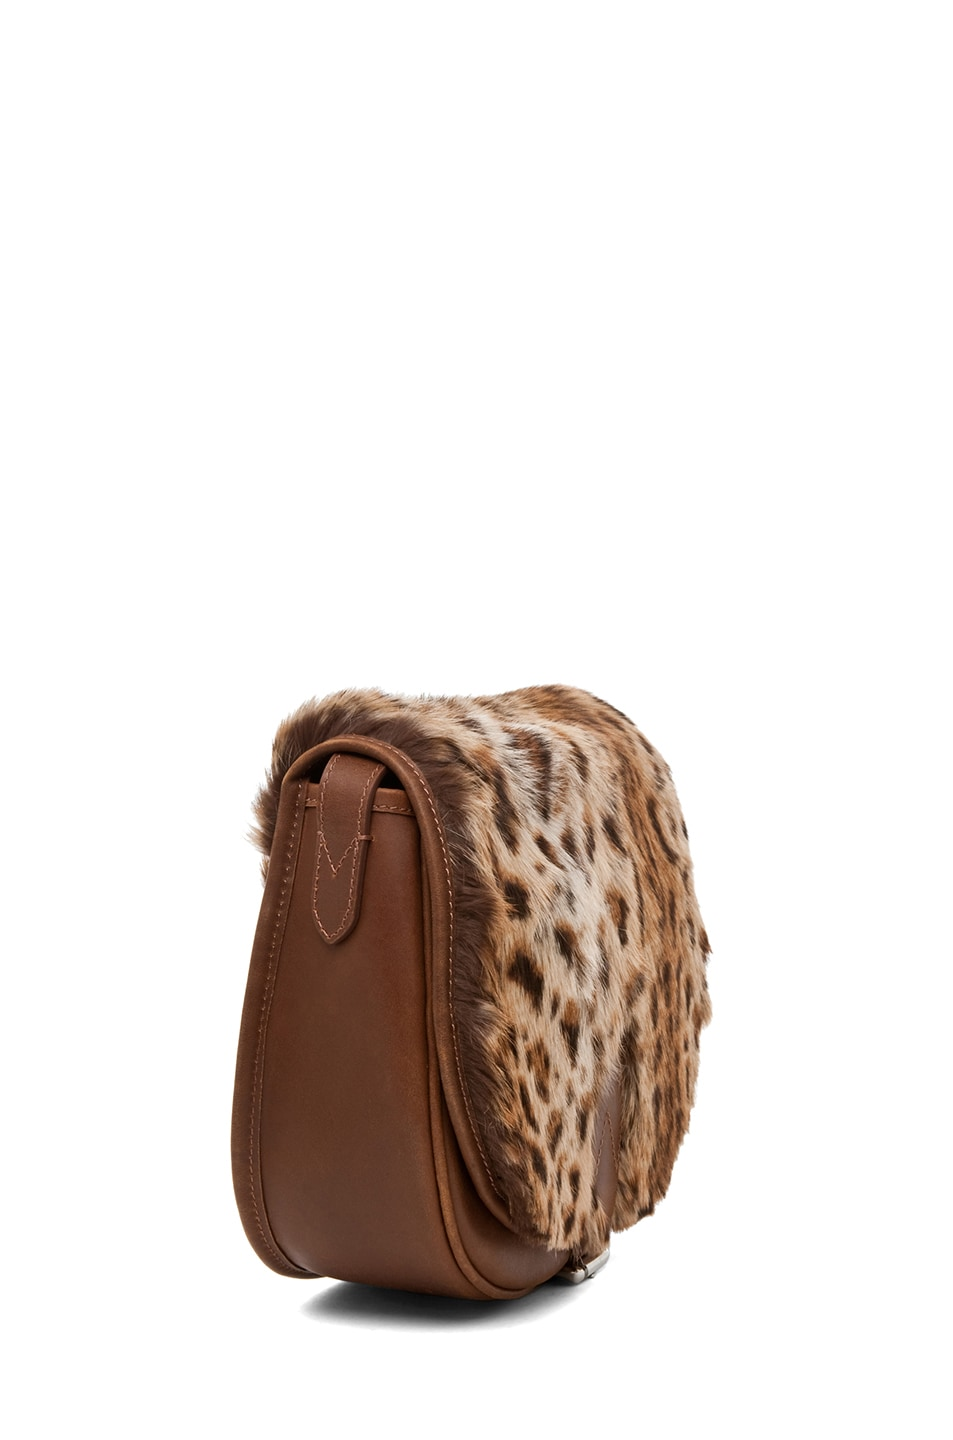 Image 3 of A.P.C. Sac Besace Leopard Bag in Caramel